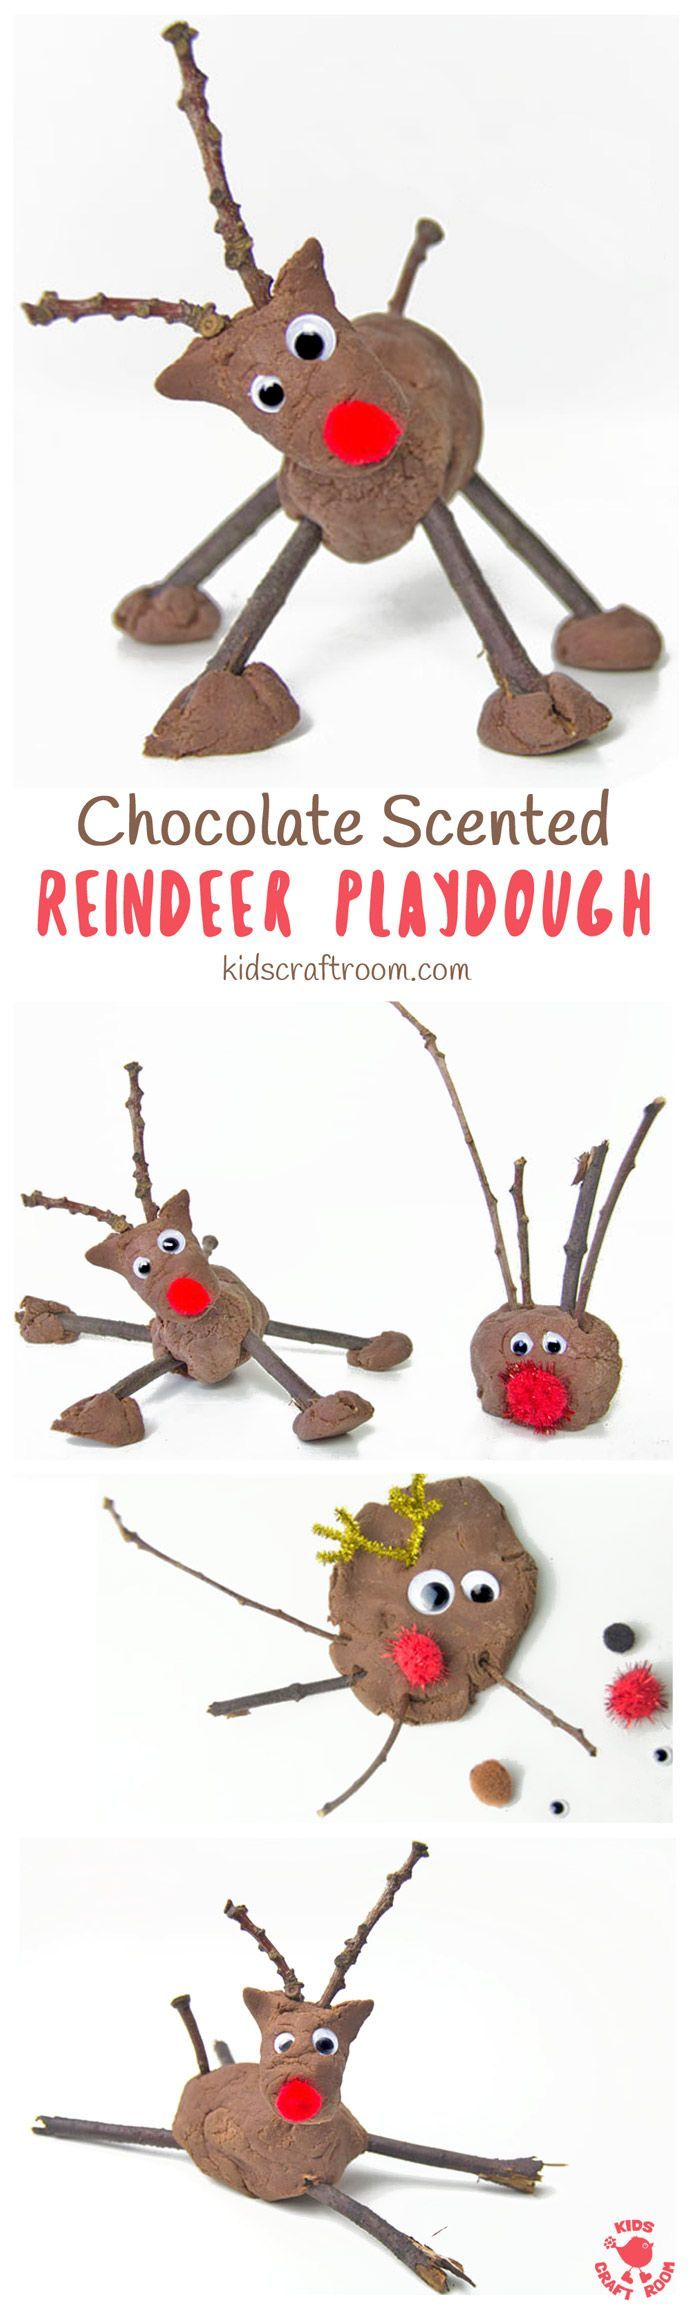 CHOCOLATE SCENTED REINDEER PLAY DOUGH...